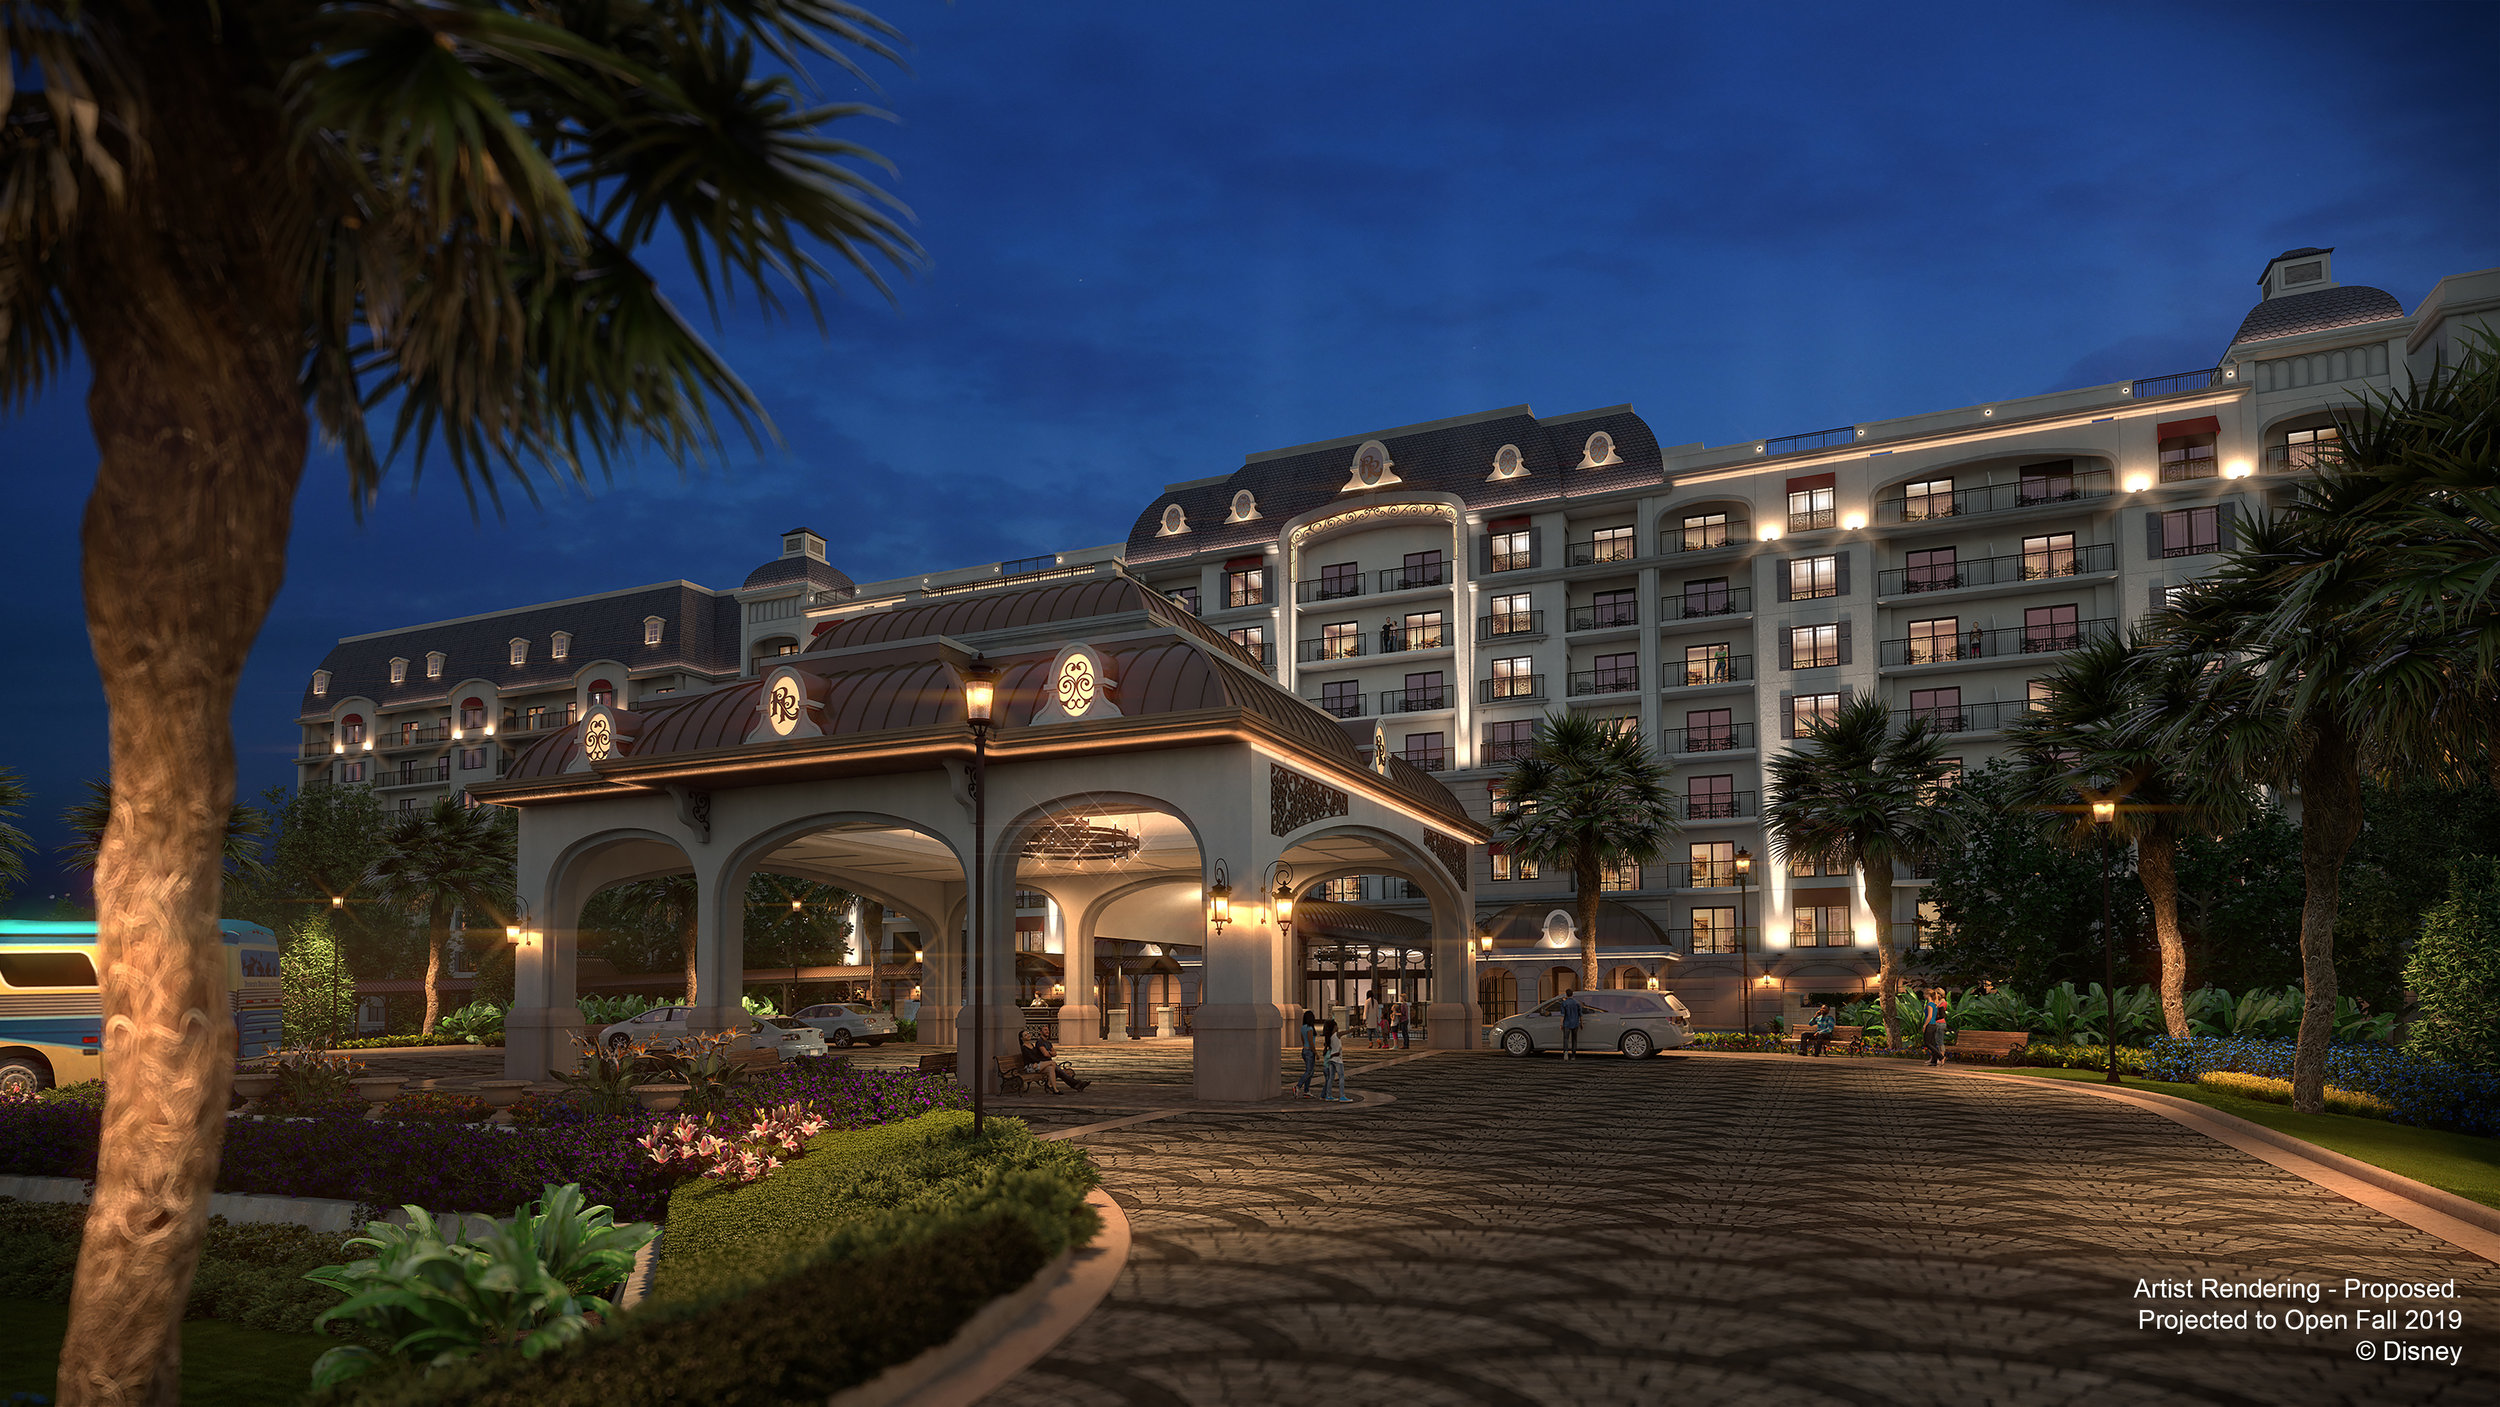 Disney's Riviera Resort opening Dec 18, 2019